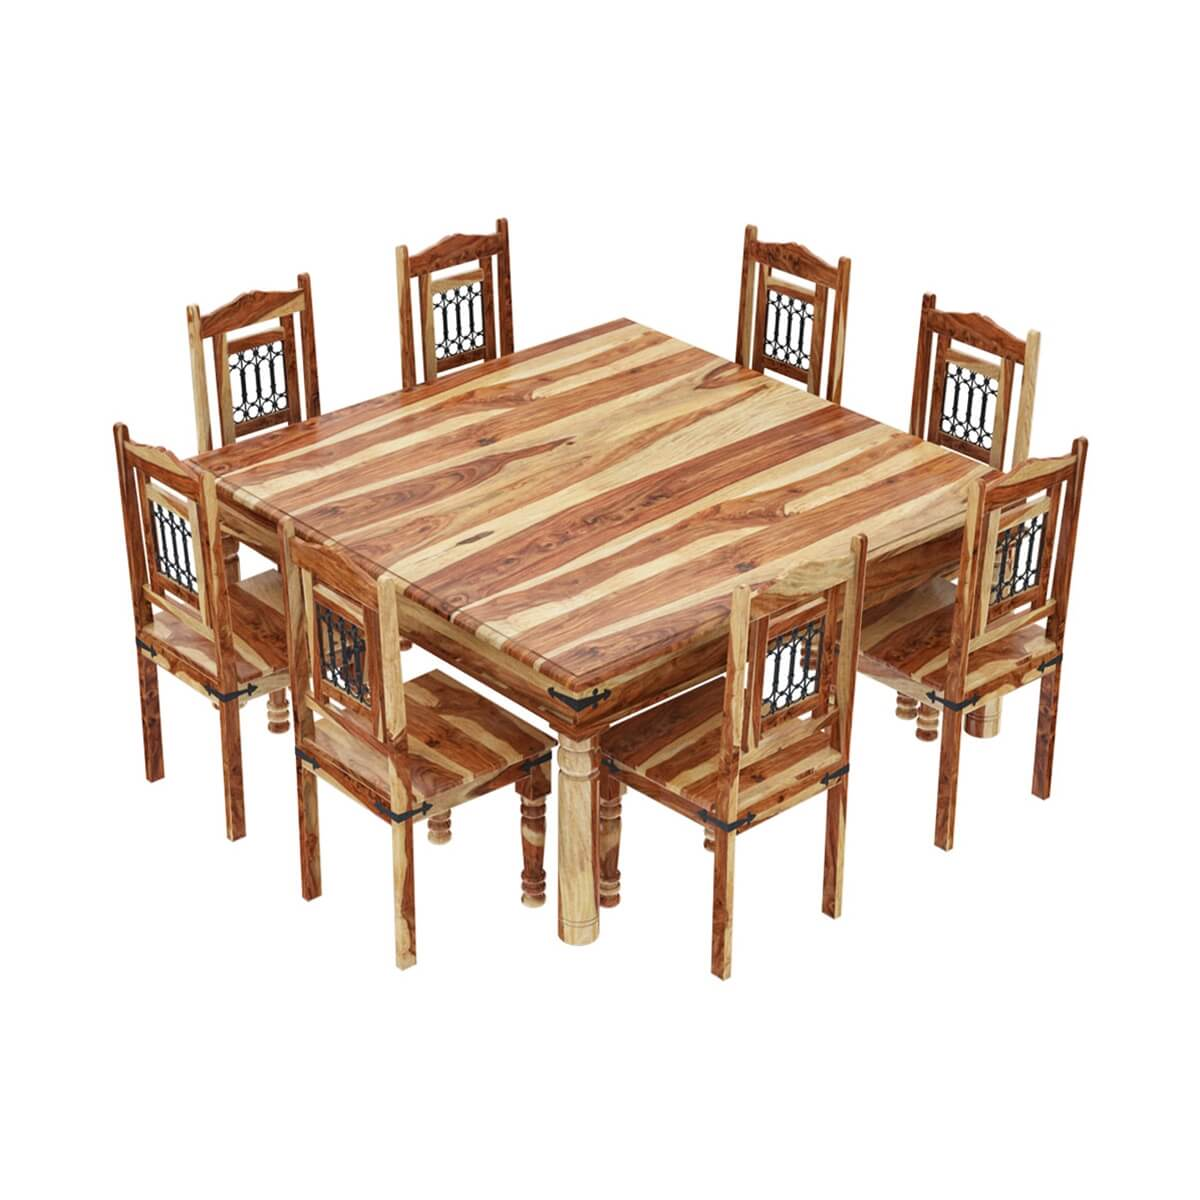 8 Person Square Dining Table: Peoria Solid Wood Large Square Dining Table & Chair Set For 8 People